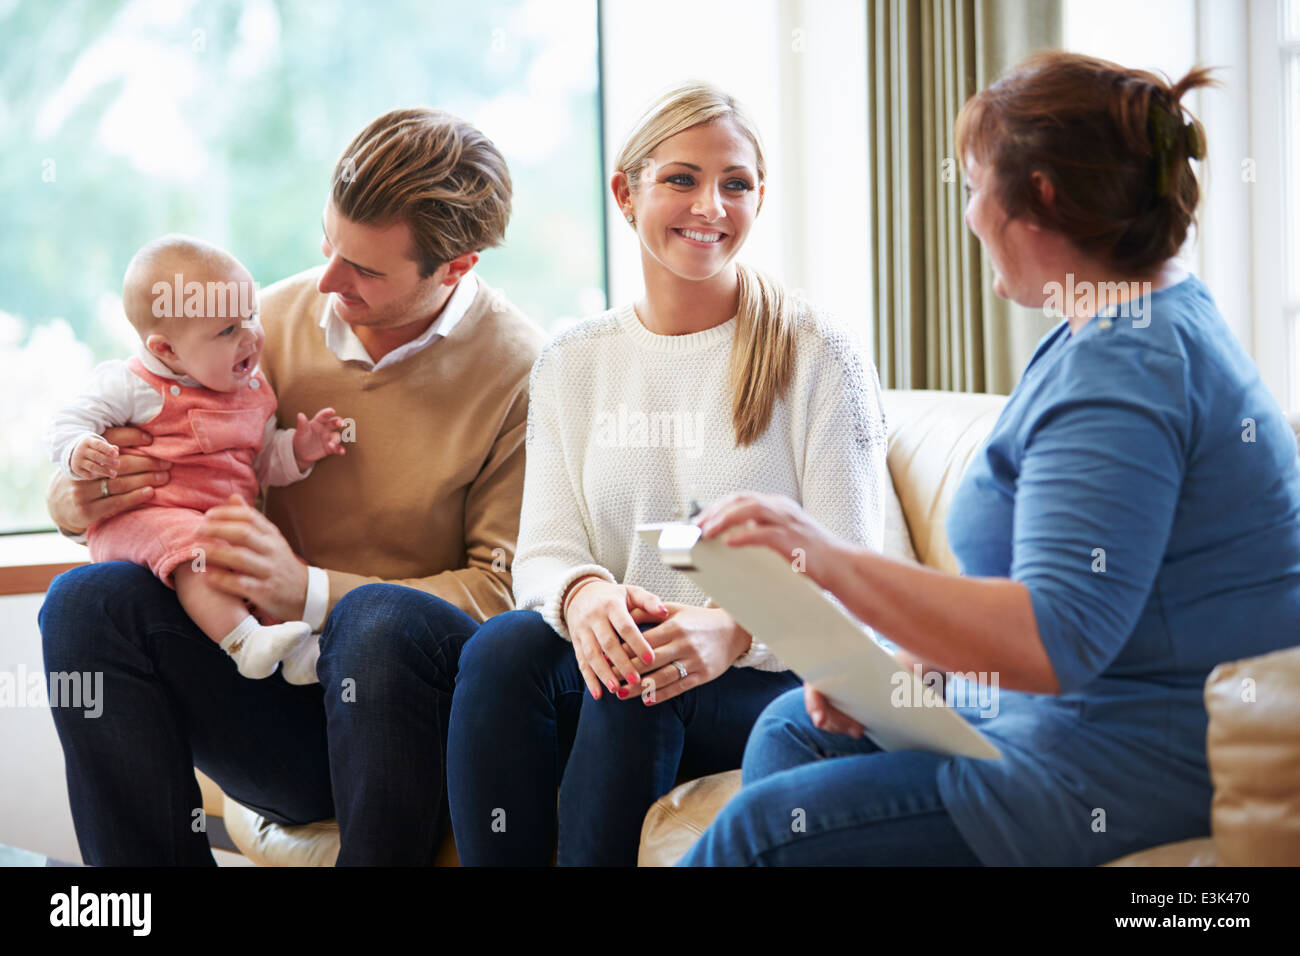 Health Visitor Talking To Family With Young Baby - Stock Image